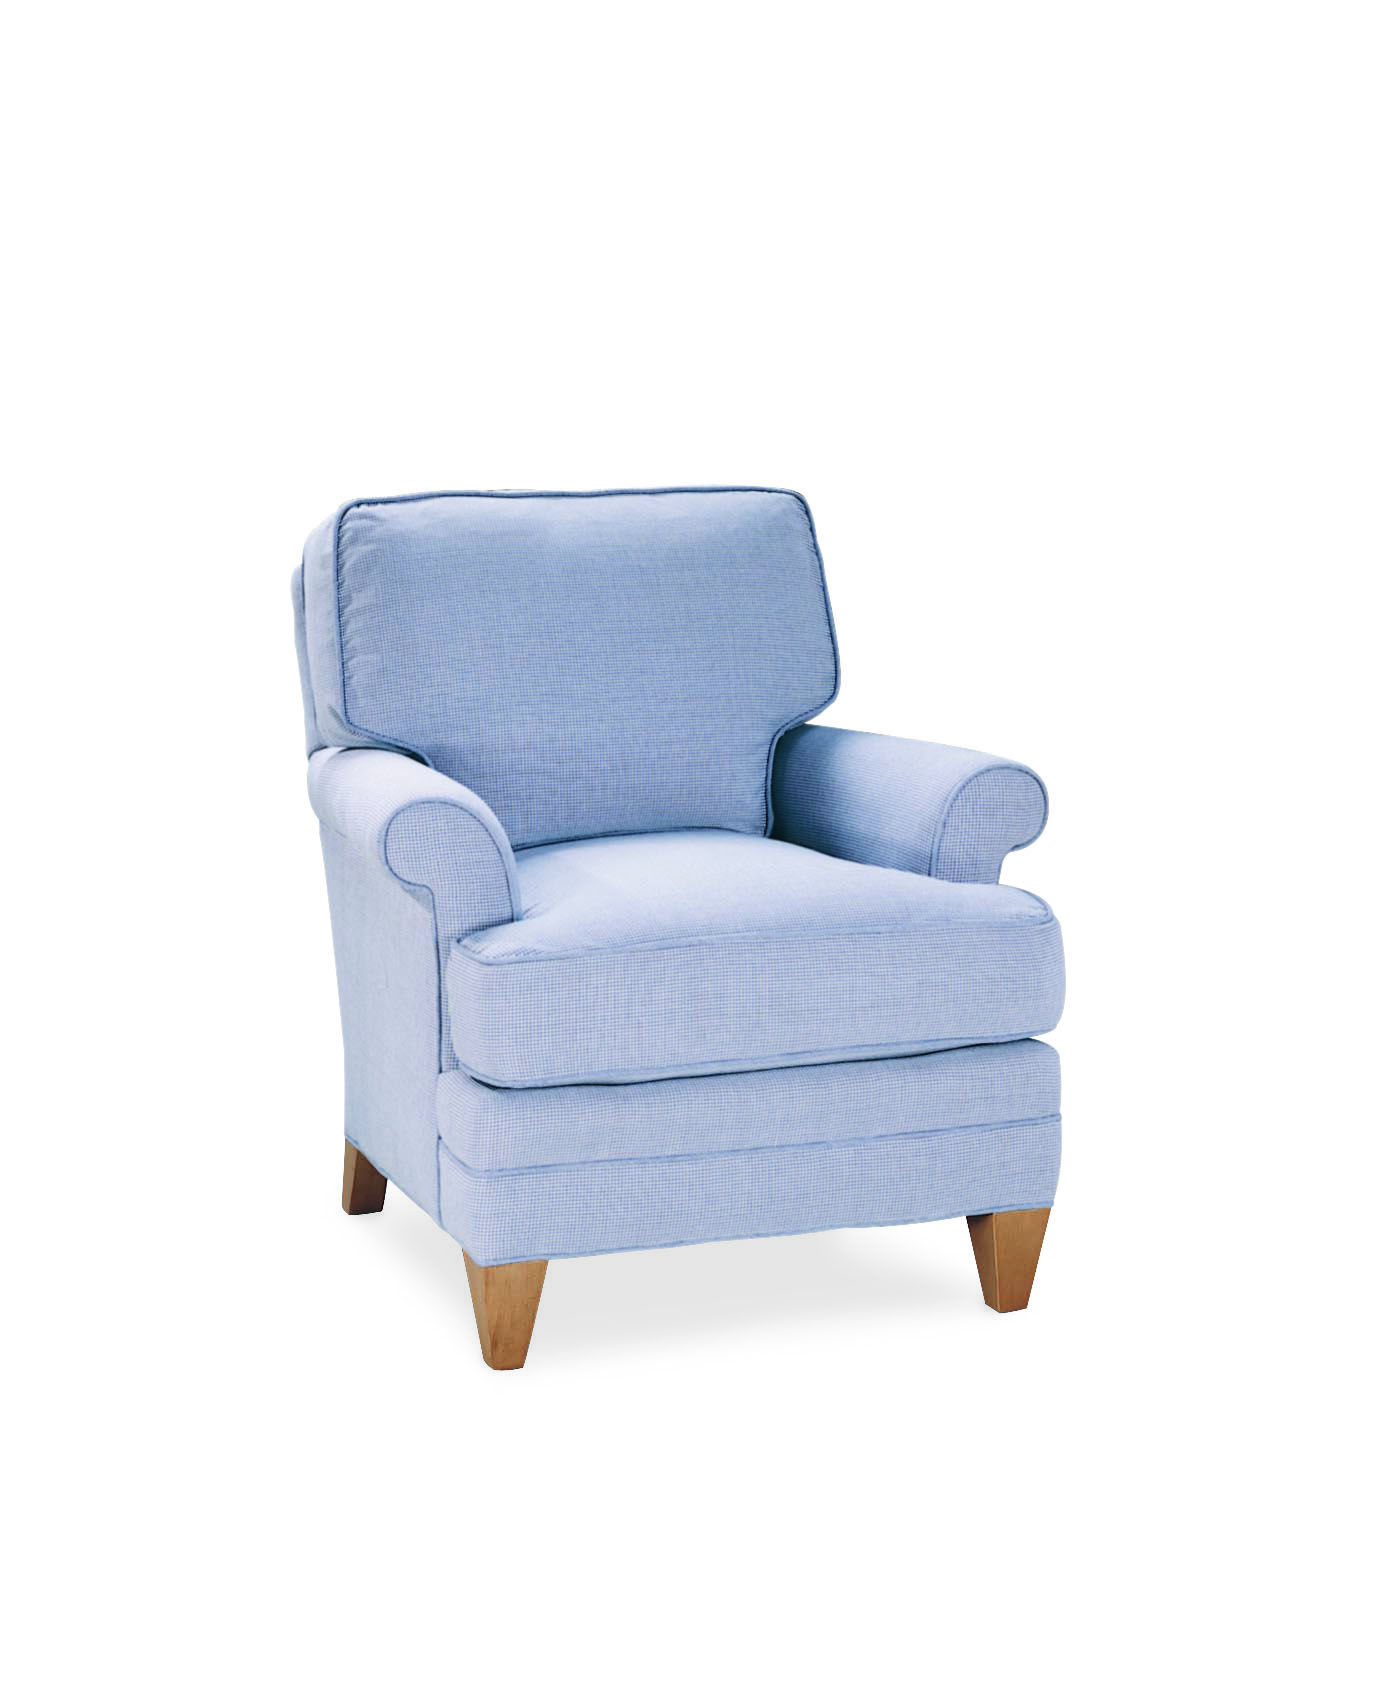 Lee Industries 3894 01 Chair Chair Exclusive Furniture Furniture